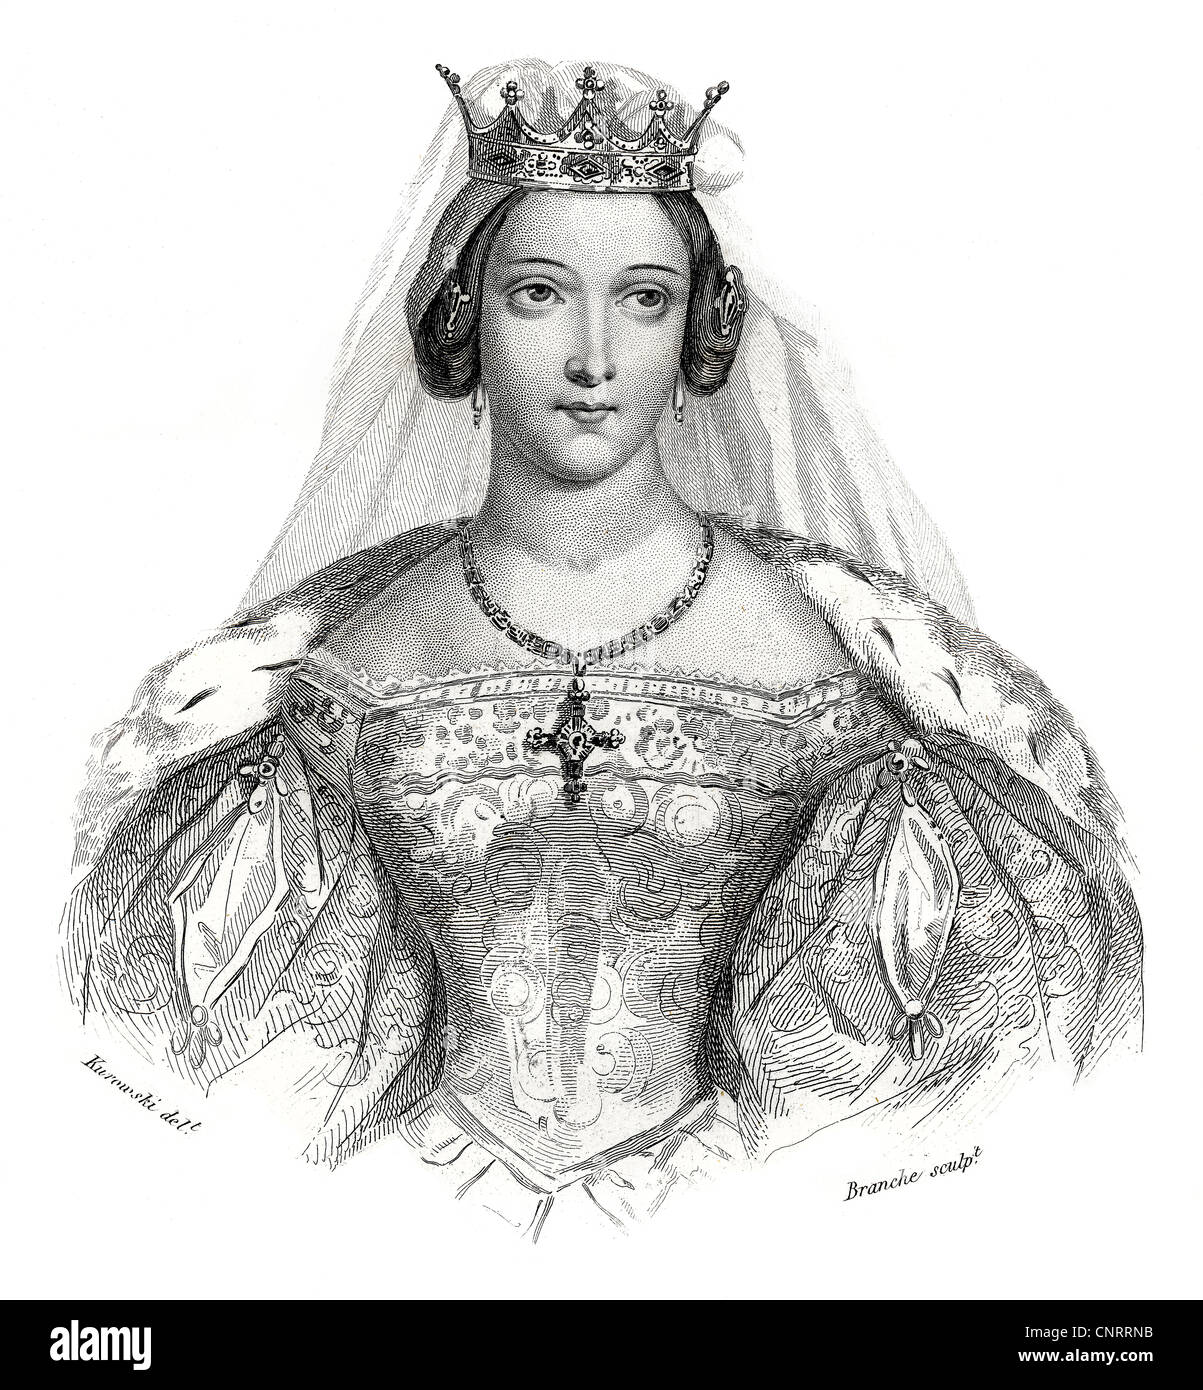 Hedwig I, Jadwiga, St. Hedwig of Poland, 14th Century, Historic steel engraving from the 19th century, - Stock Image